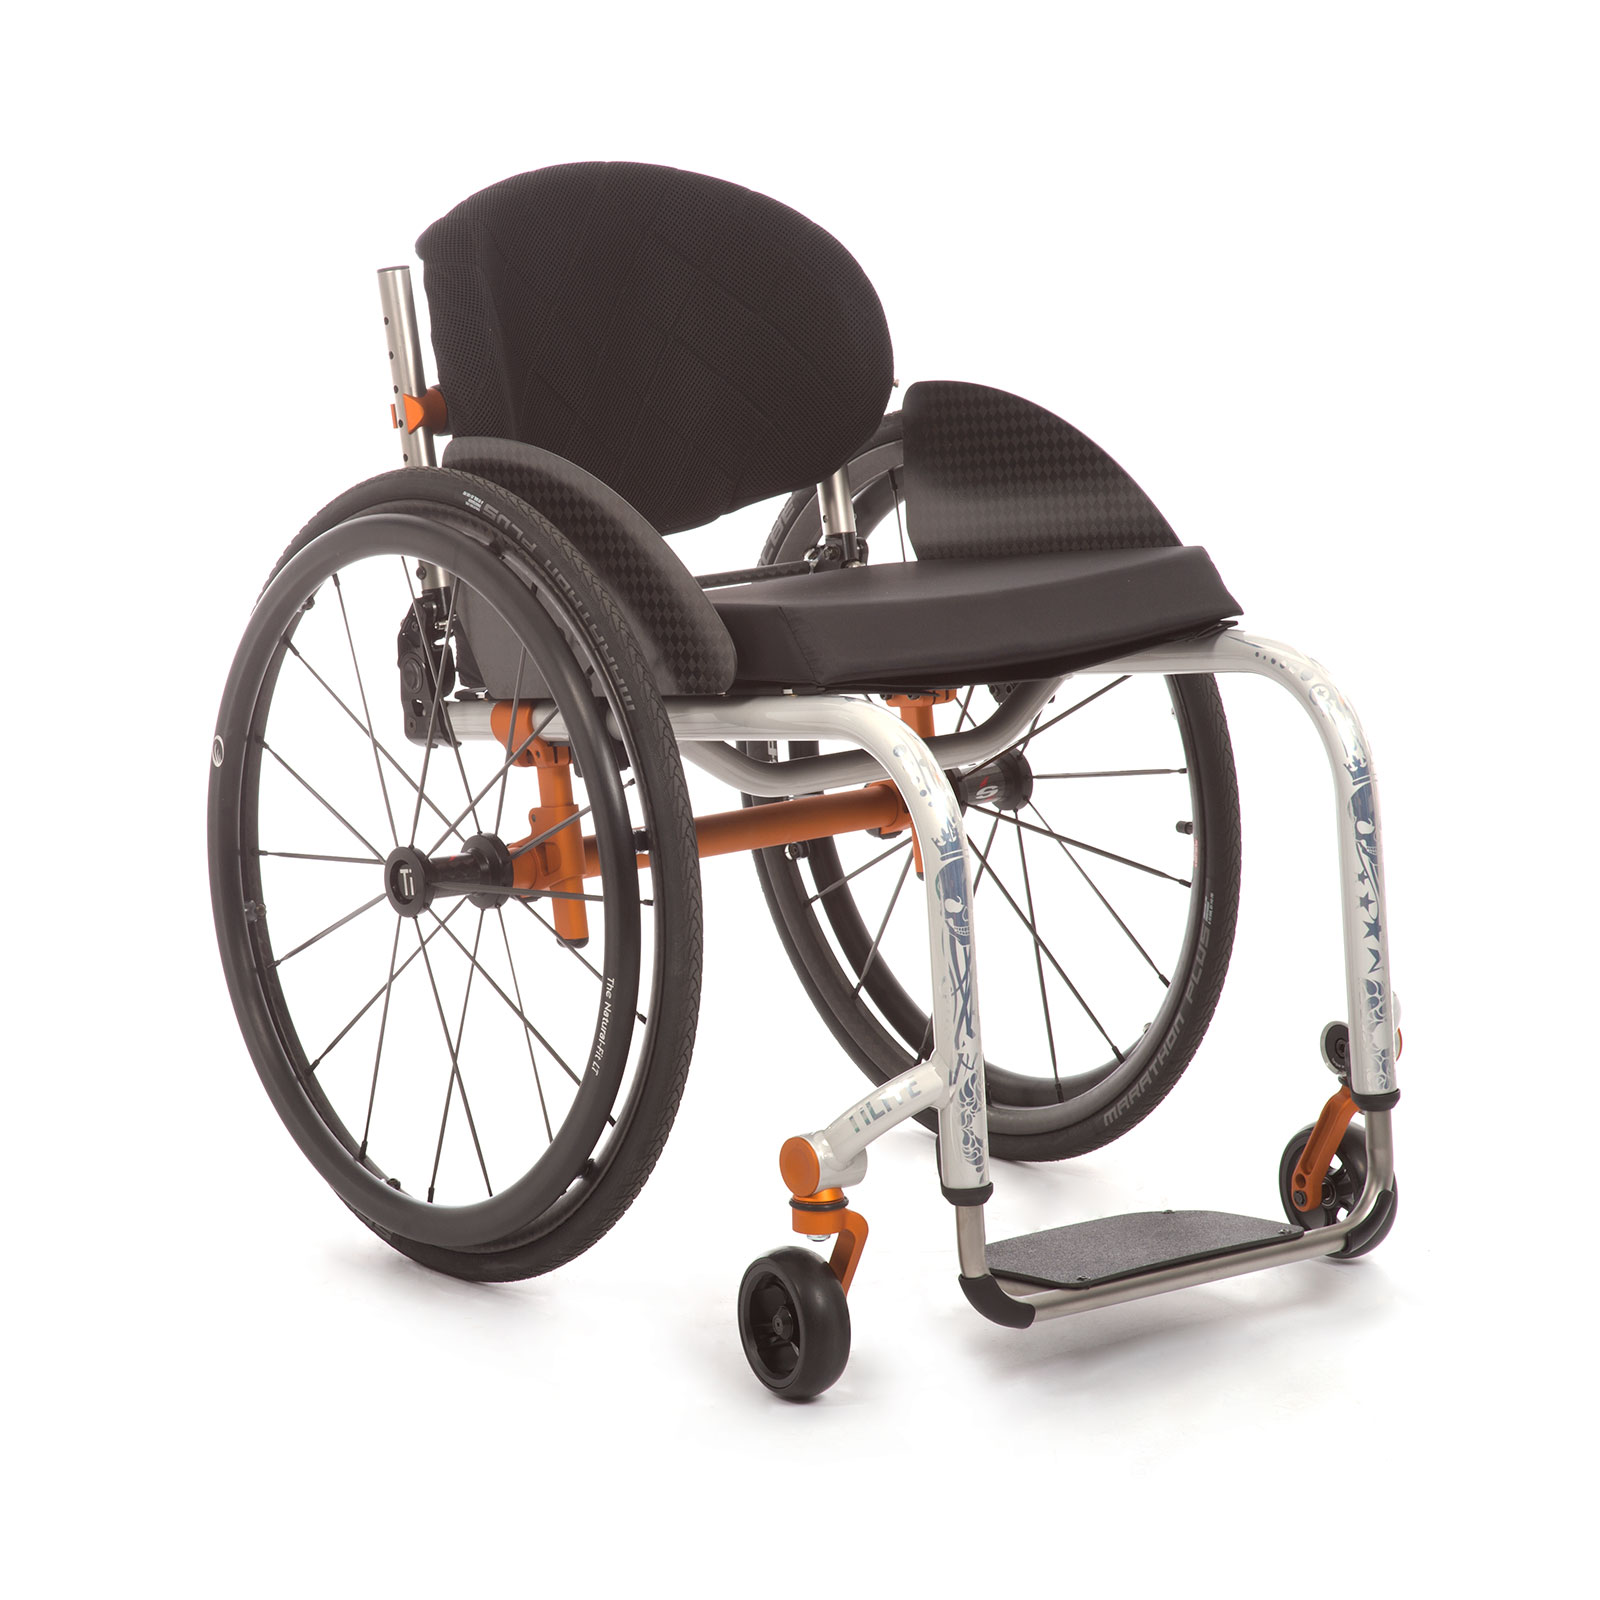 The Front Side of the Wheelchair.